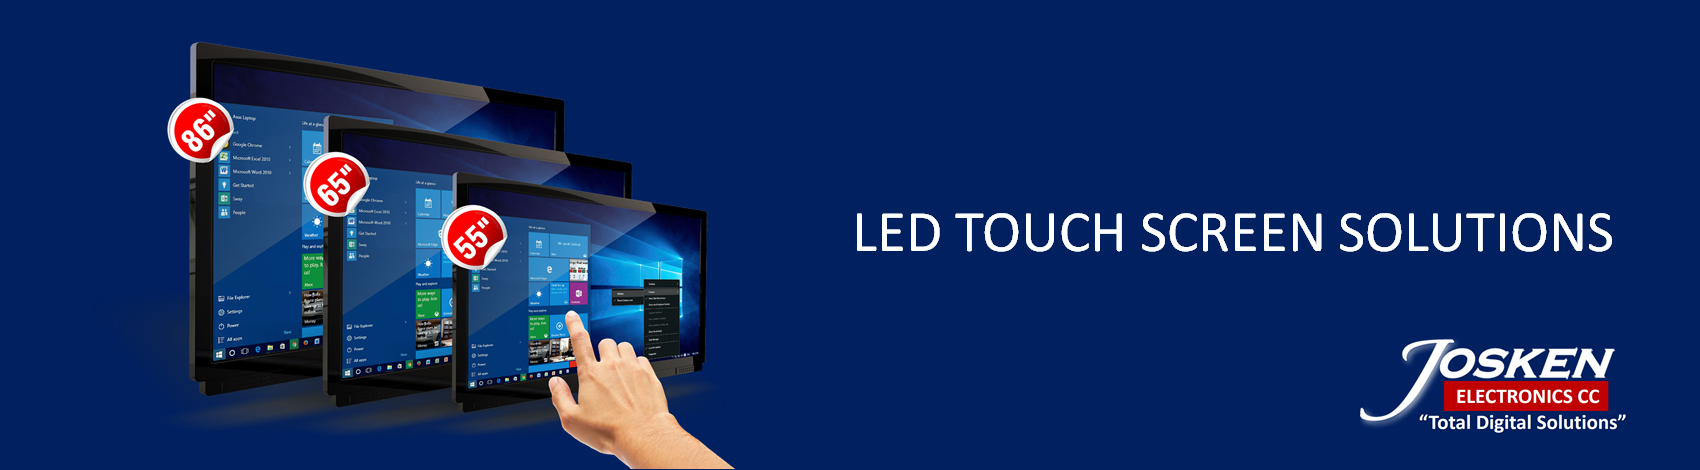 LED TOUCH SCREEN BANNER